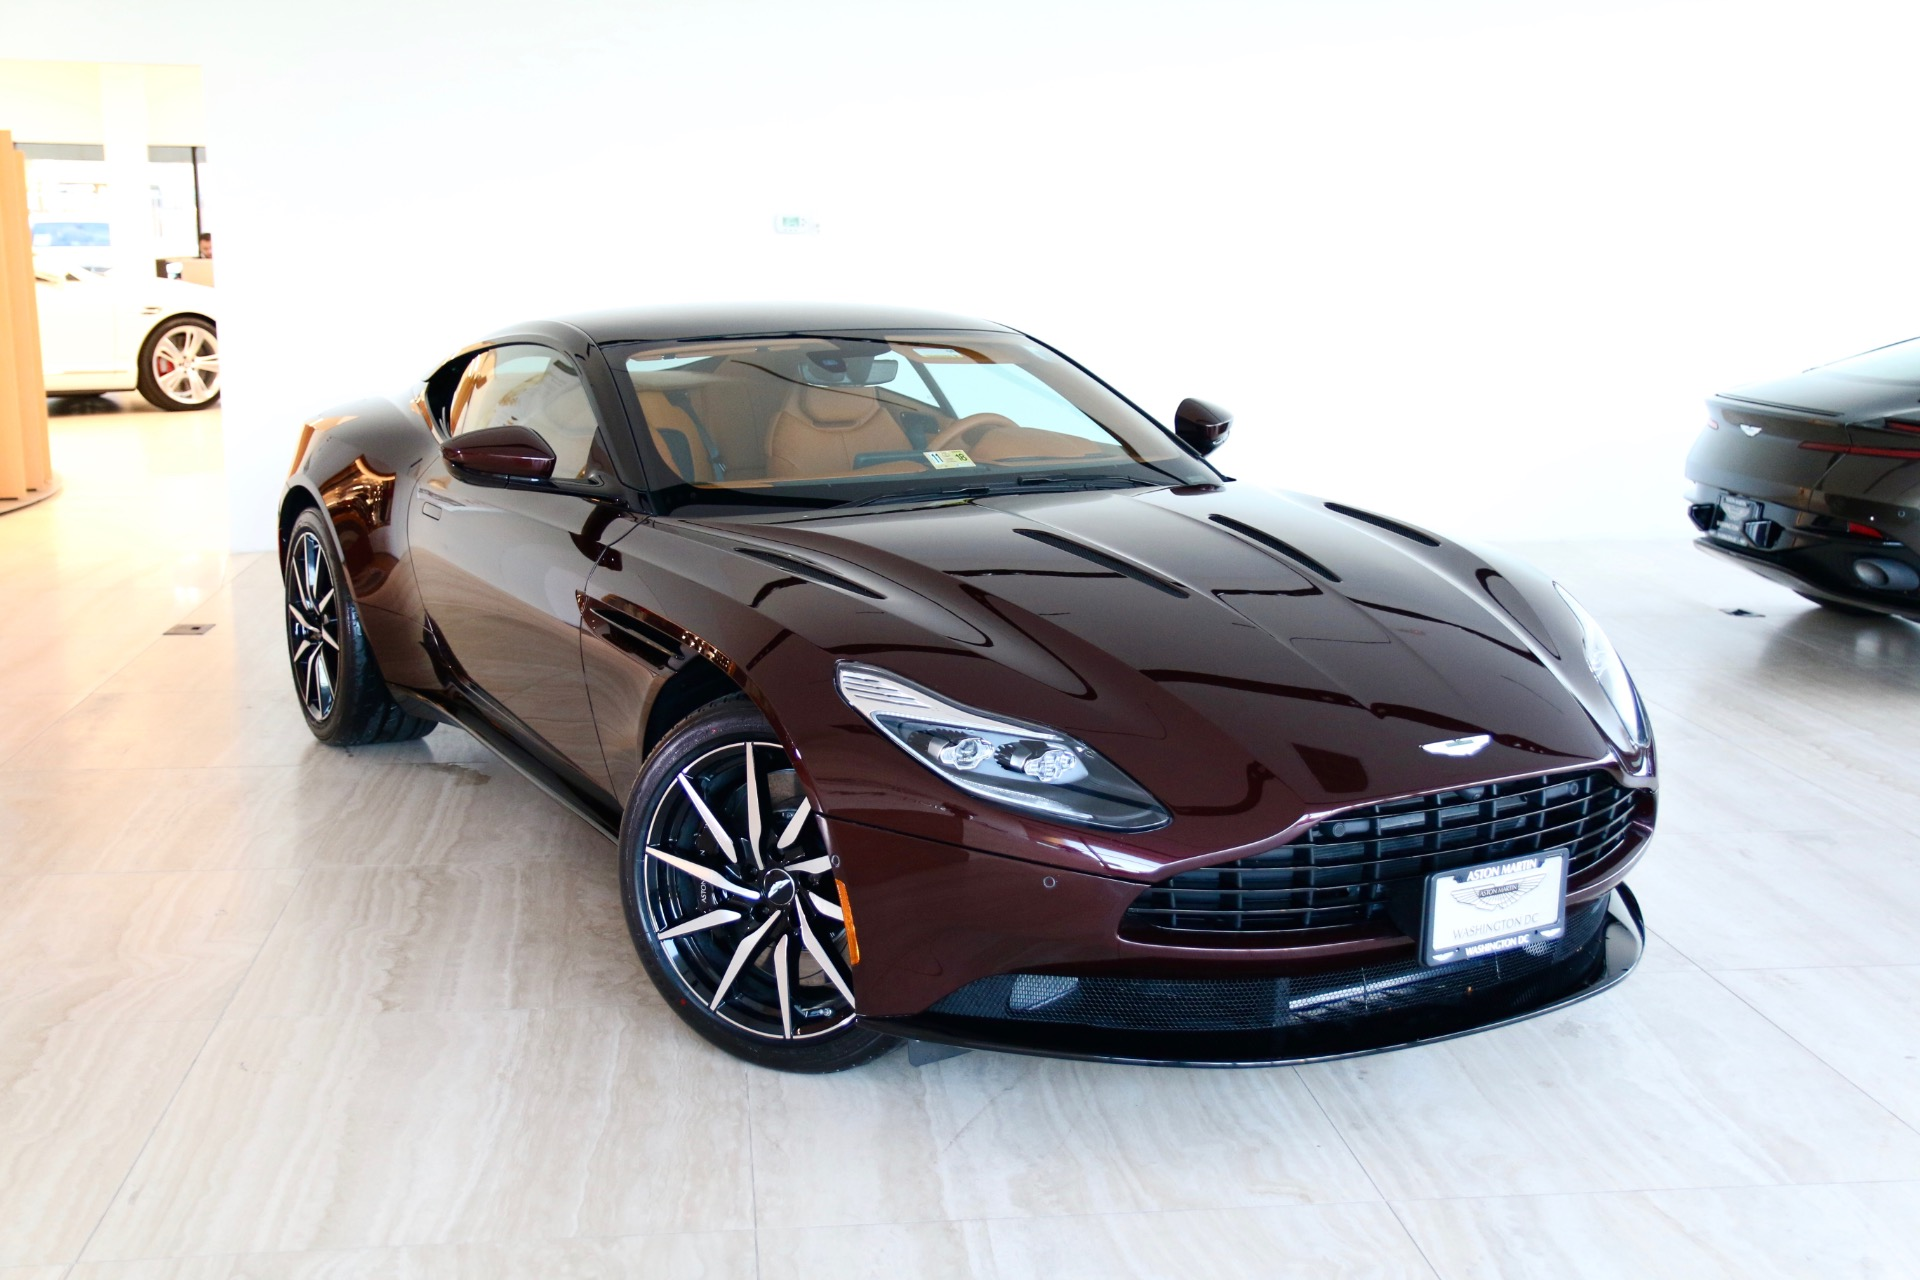 2018 Aston Martin Db11 V12 Stock 8n03445 For Sale Near Vienna Va